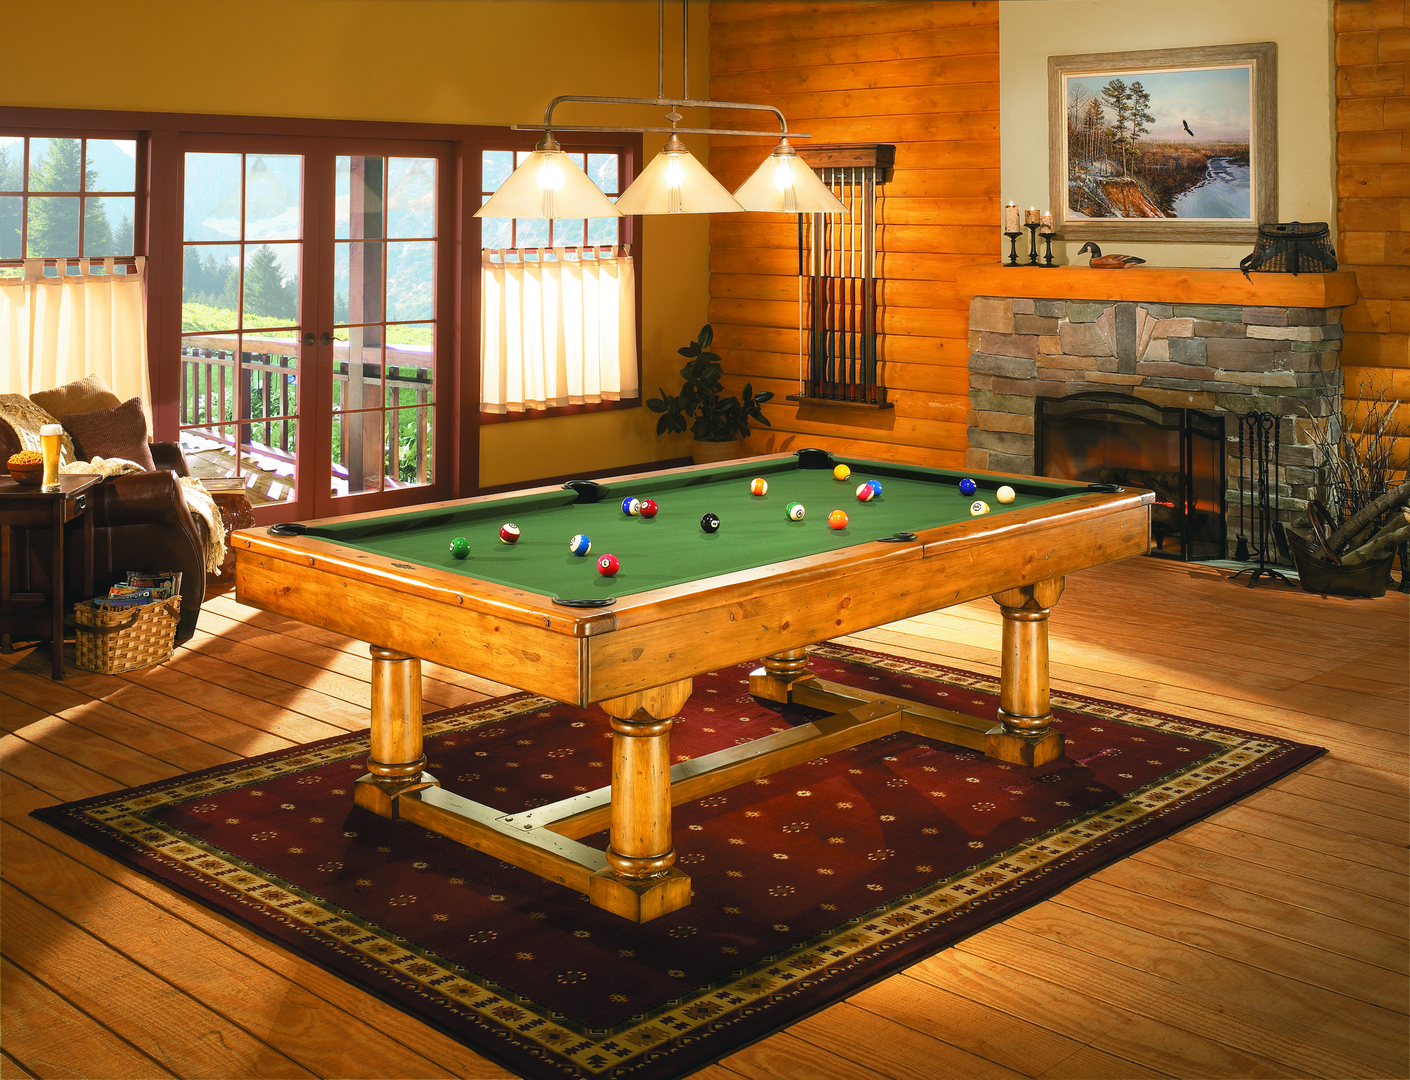 Pool tables from brunswick 858 main ave downtown durango keyboard keysfo Image collections